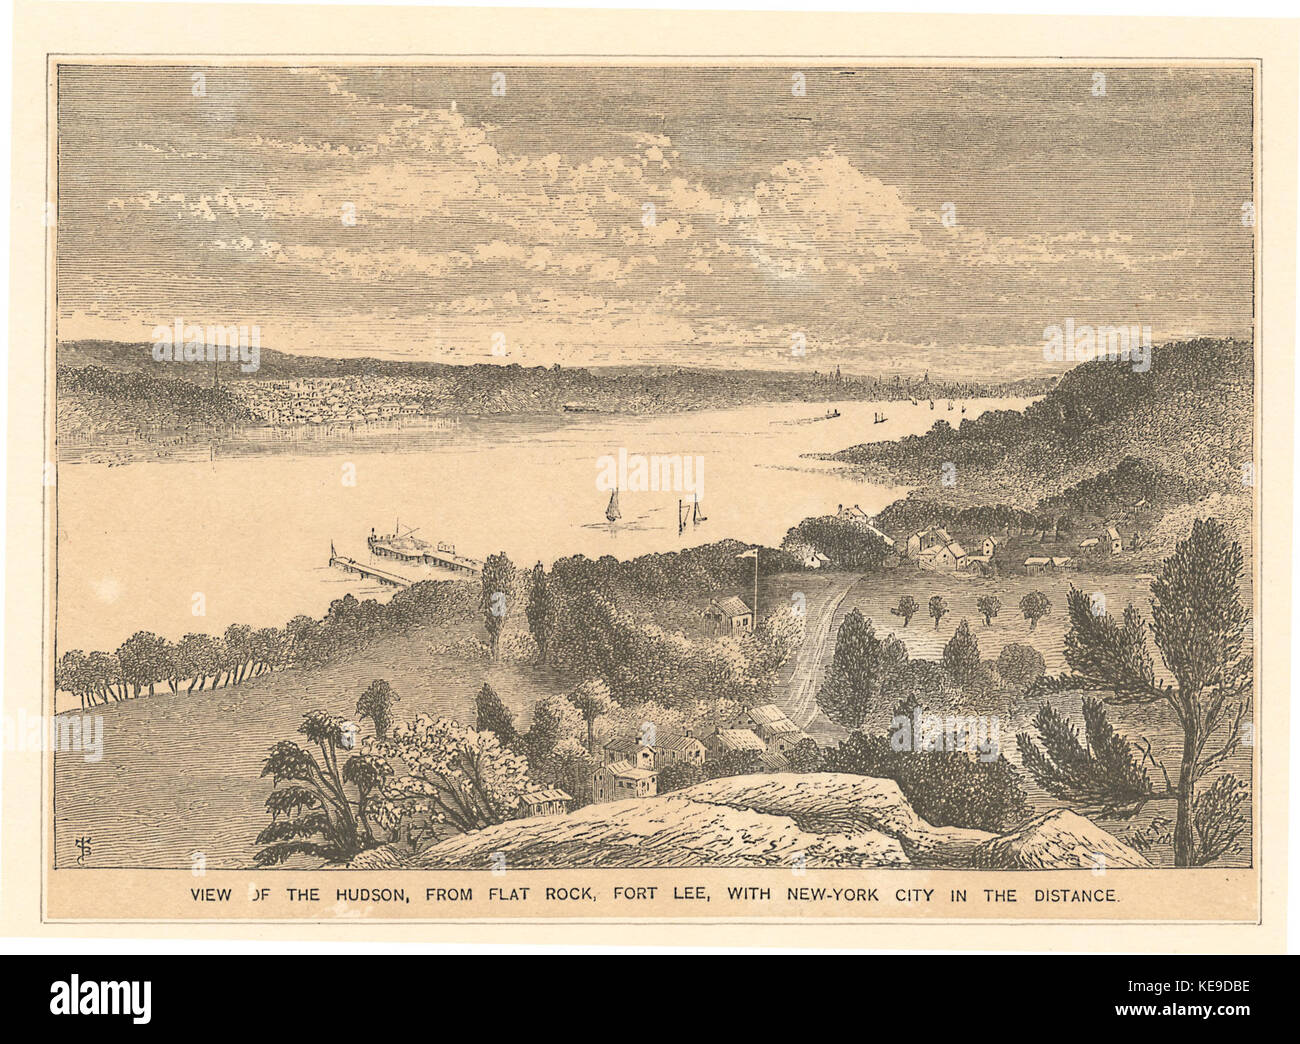 View of the Hudson from Flat Rock, Fort Lee, with New York City in the distance (NYPL b12610211 424943) - Stock Image